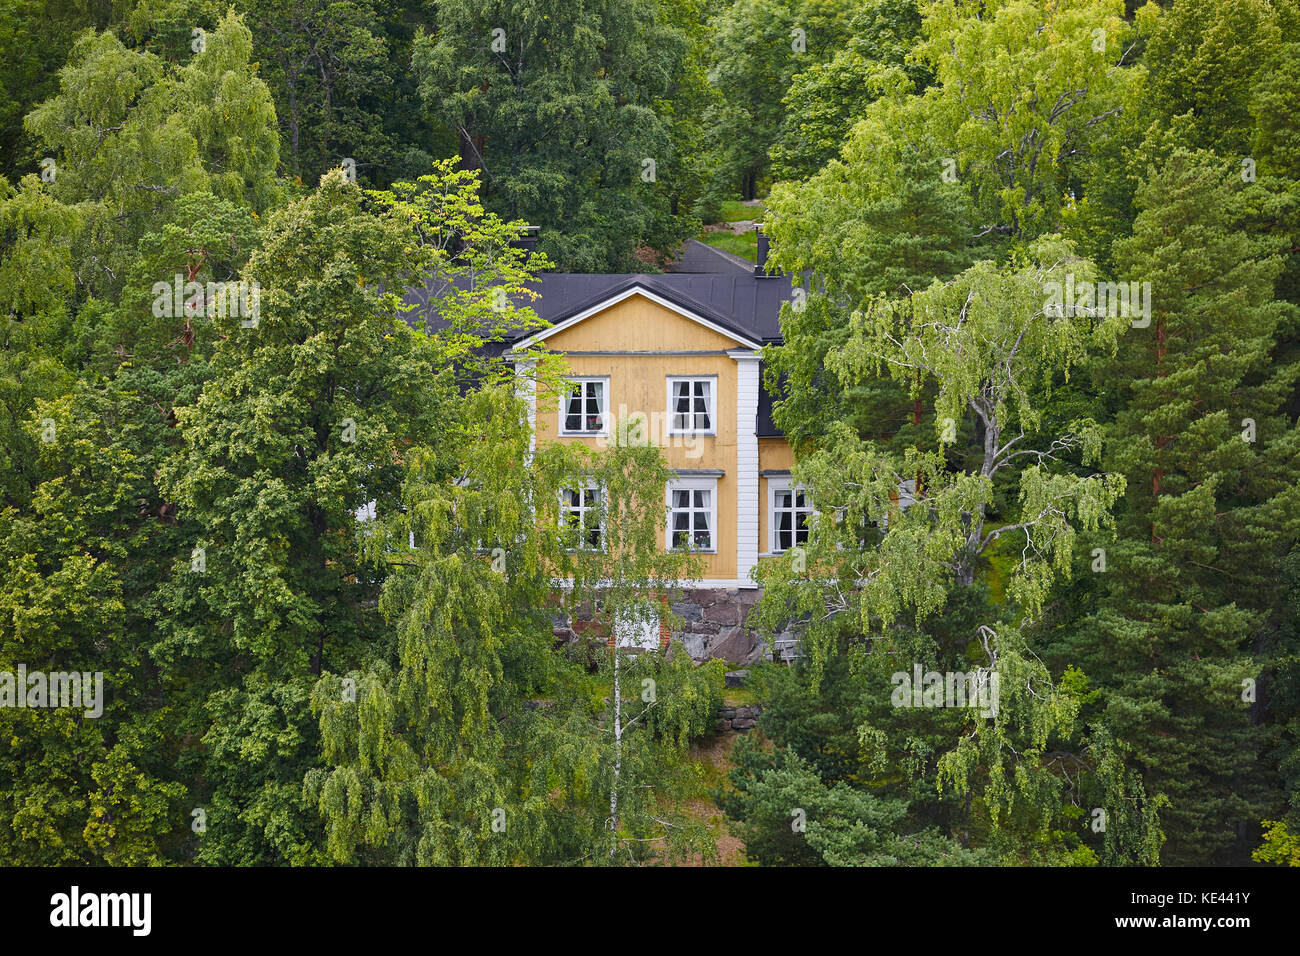 Yellow wooden house surrounded by forest in Finland. Nature background - Stock Image